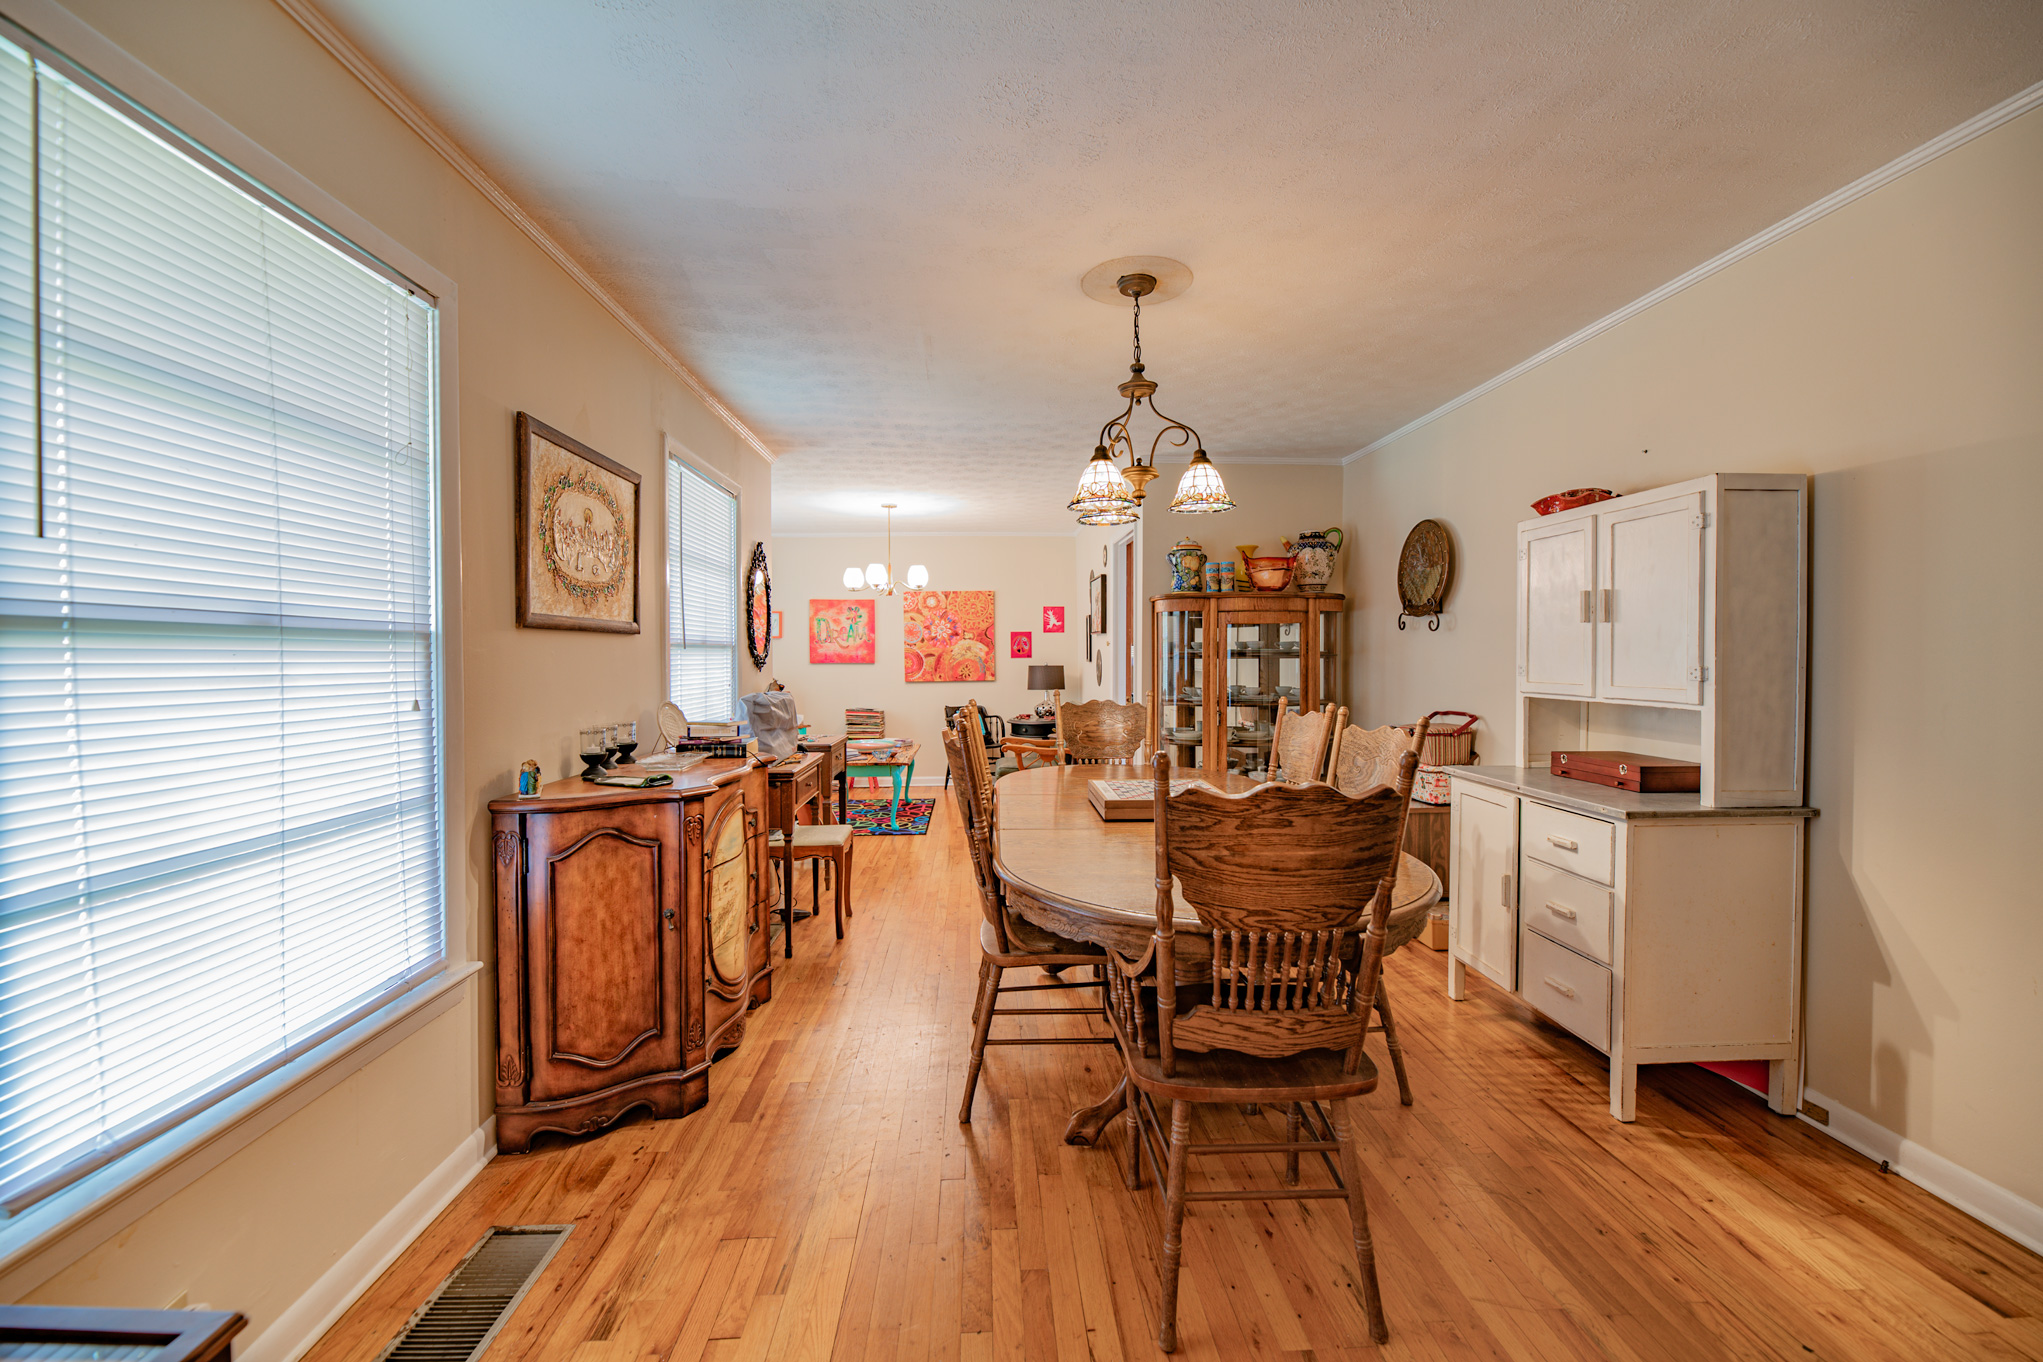 3-rivers-realty,3rr,911-morningside-drive,bainbridge-real-estate,bainbridggarealestate,mills-brock,three-rivers-realty,dining-room.jpg